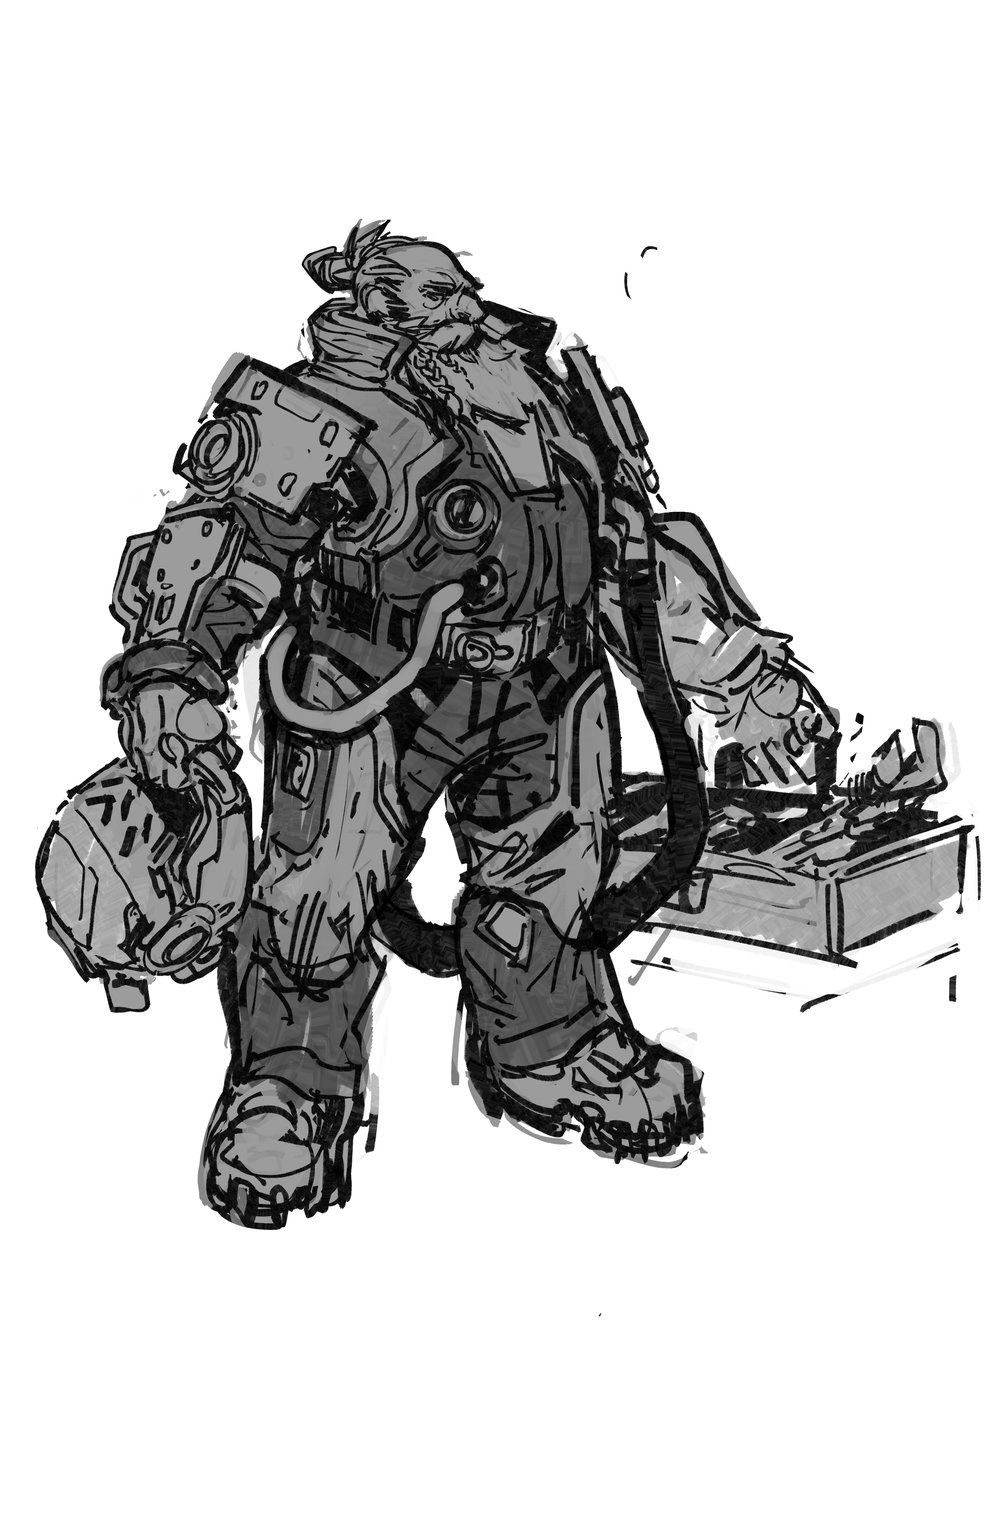 Pilot_mechanic_sketch.jpg